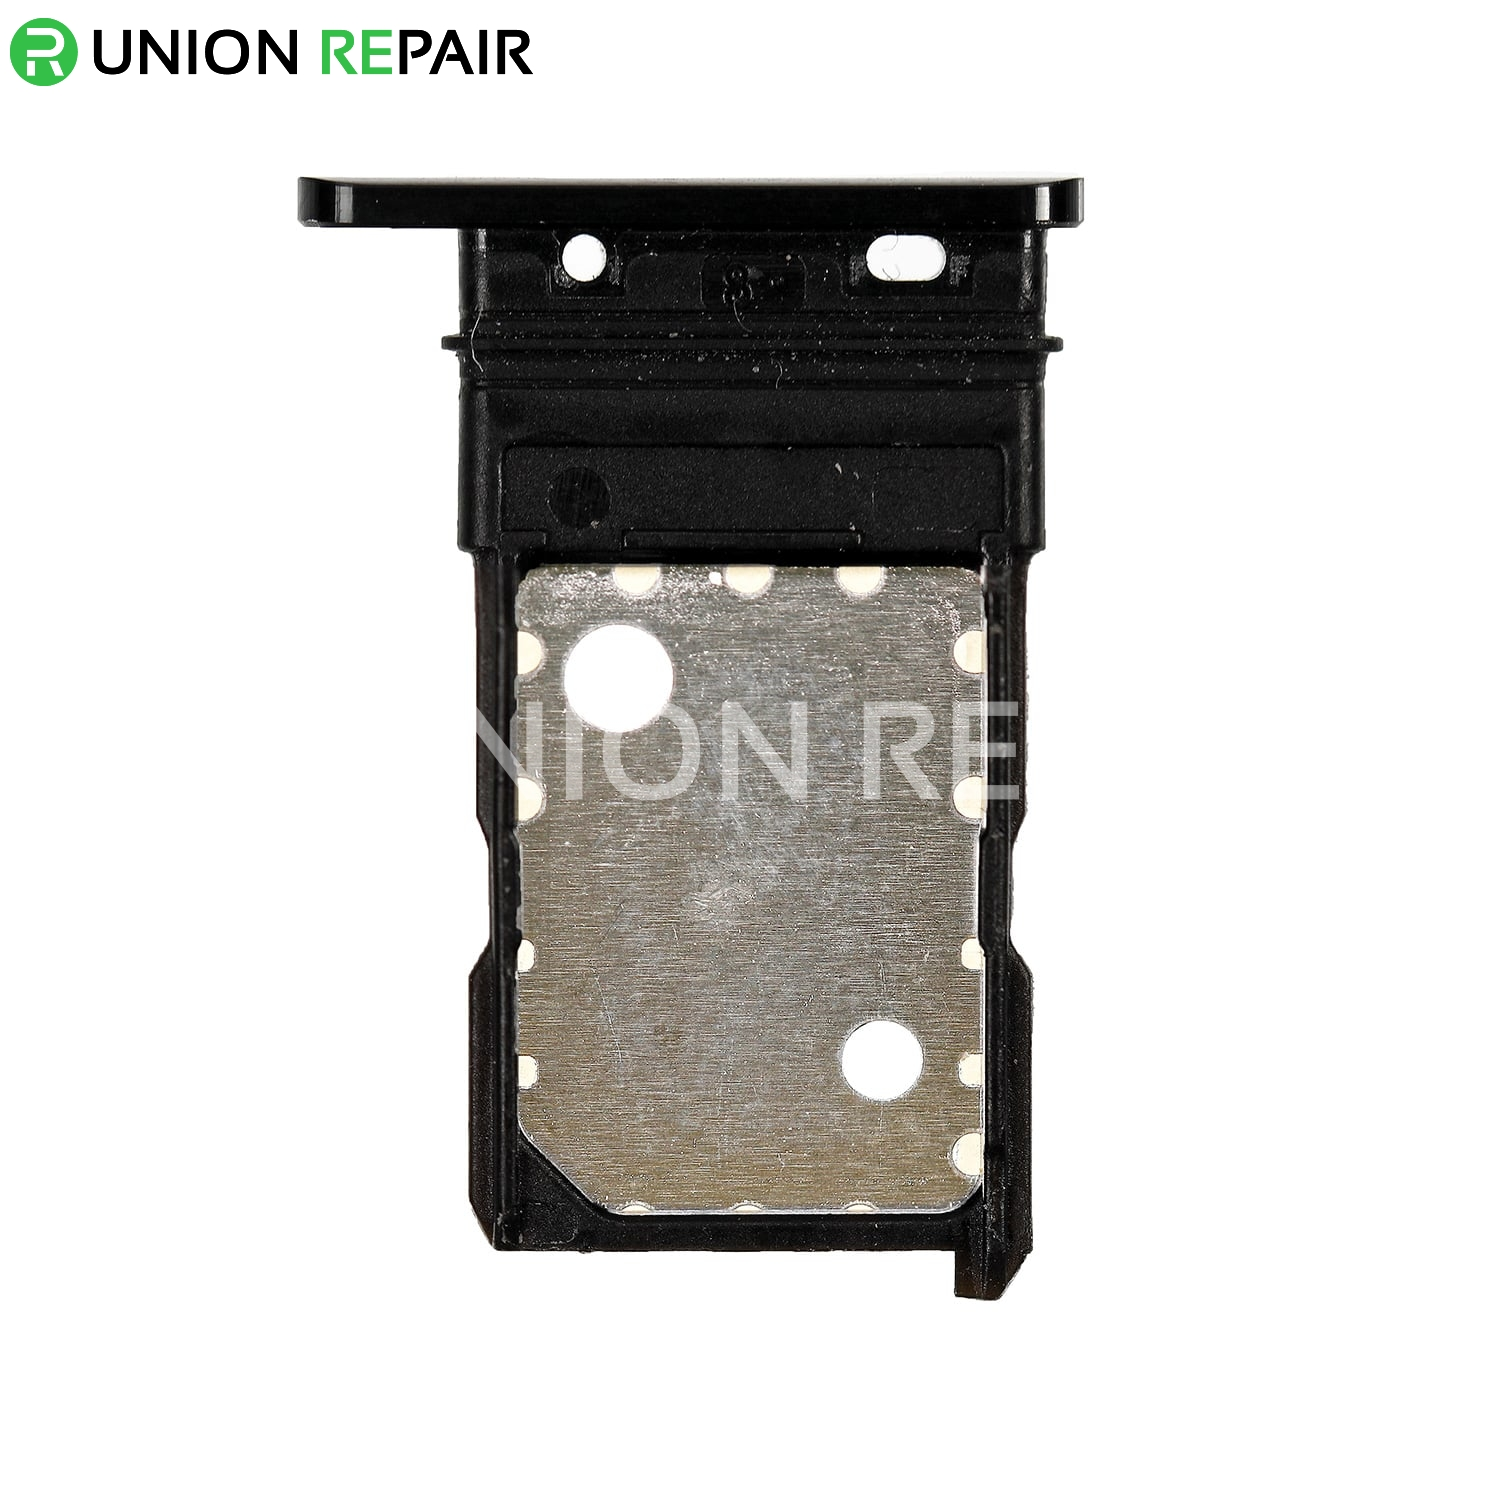 Replacement for Google Pixel 3 SIM Card Tray - Black